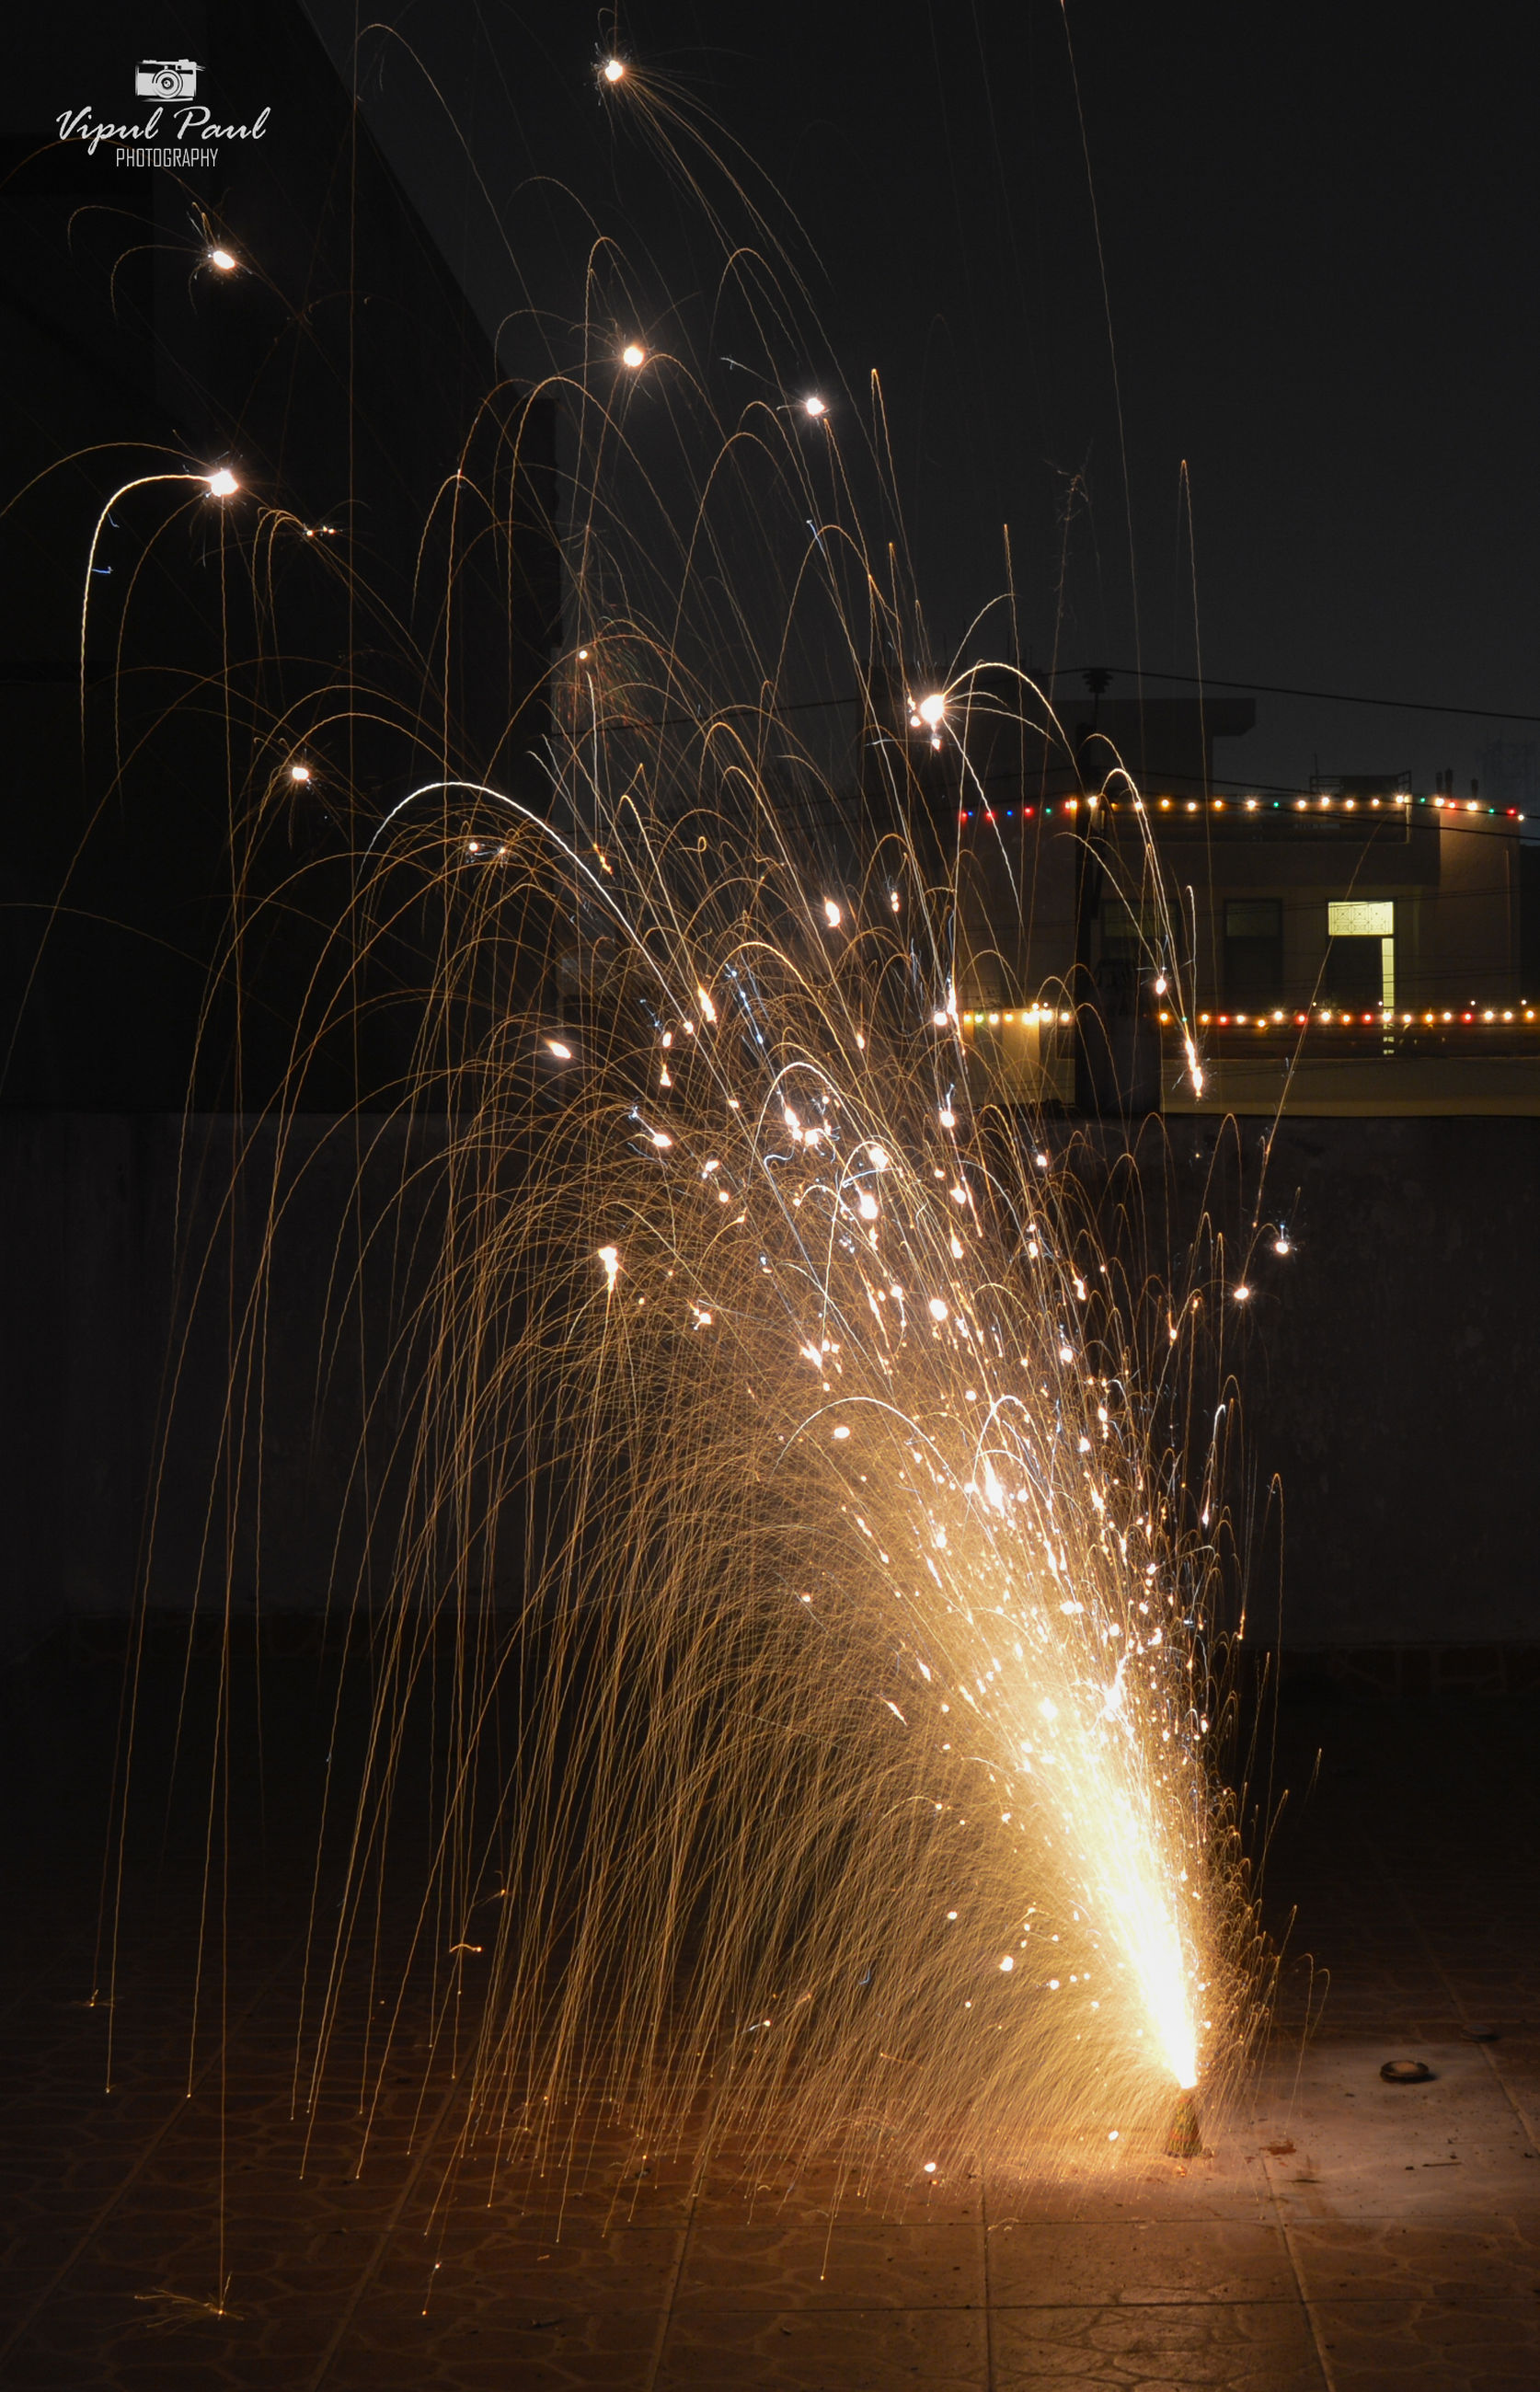 night, illuminated, long exposure, motion, glowing, light trail, sparks, lighting equipment, blurred motion, firework display, exploding, celebration, arts culture and entertainment, sky, firework - man made object, light - natural phenomenon, speed, street light, dark, outdoors